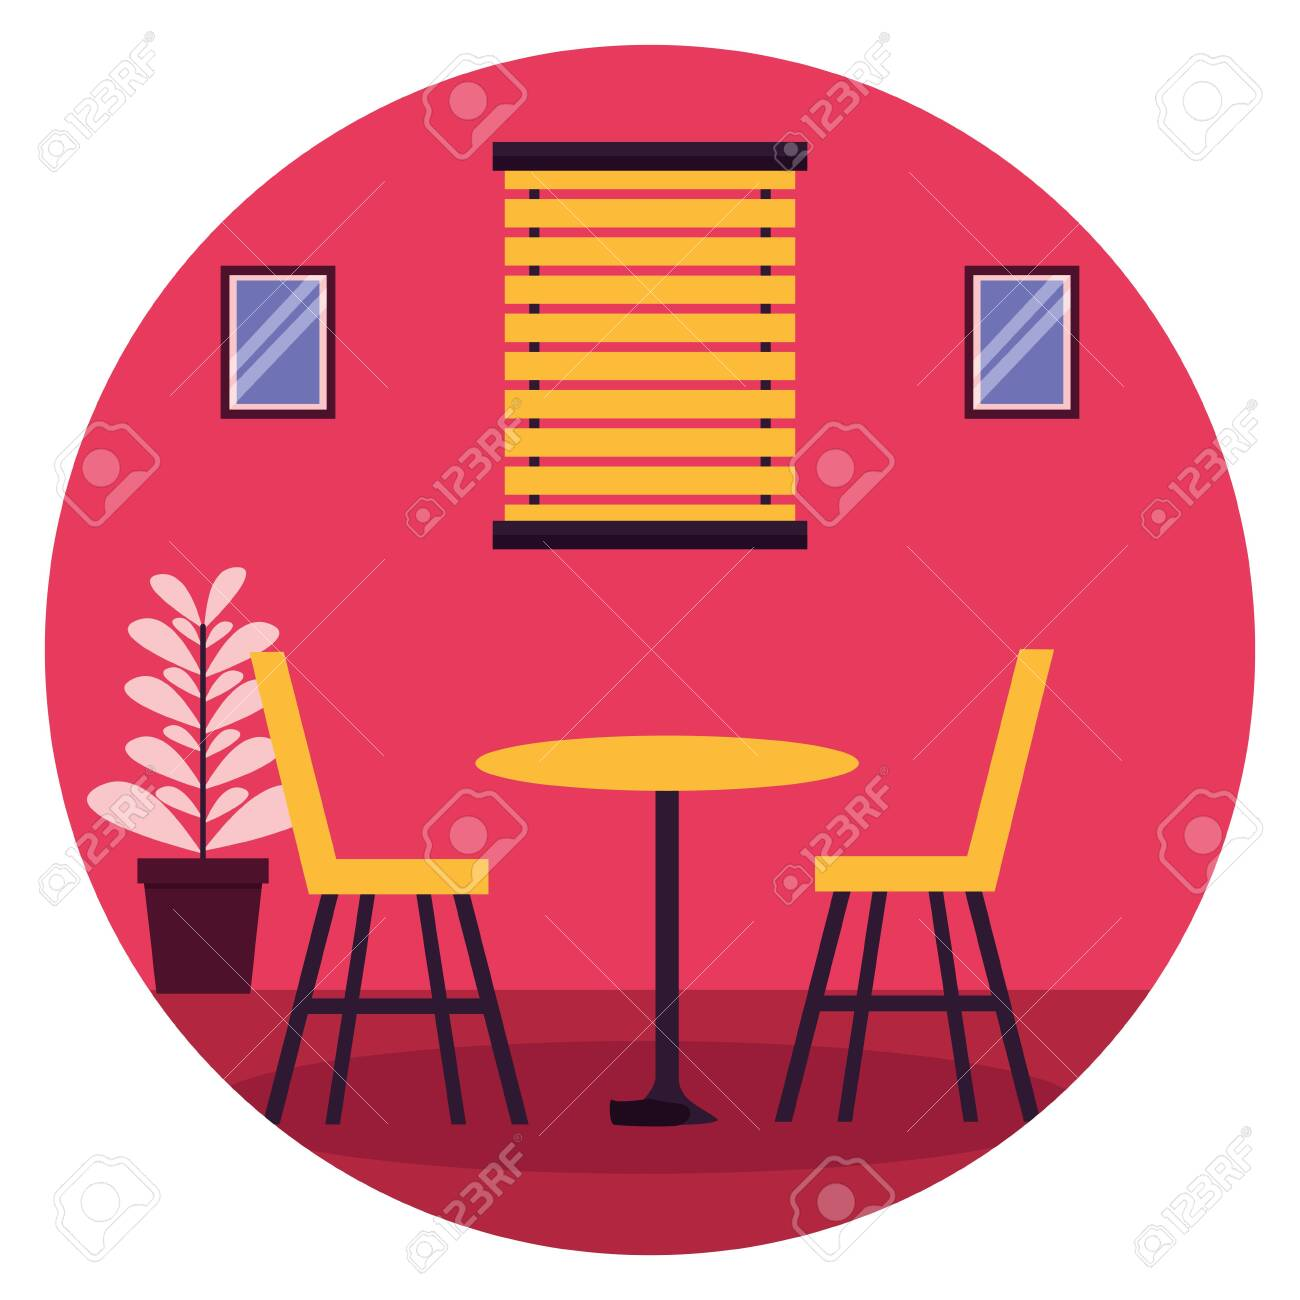 table chairs window plant pot furniture sticker vector illustration - 130074033